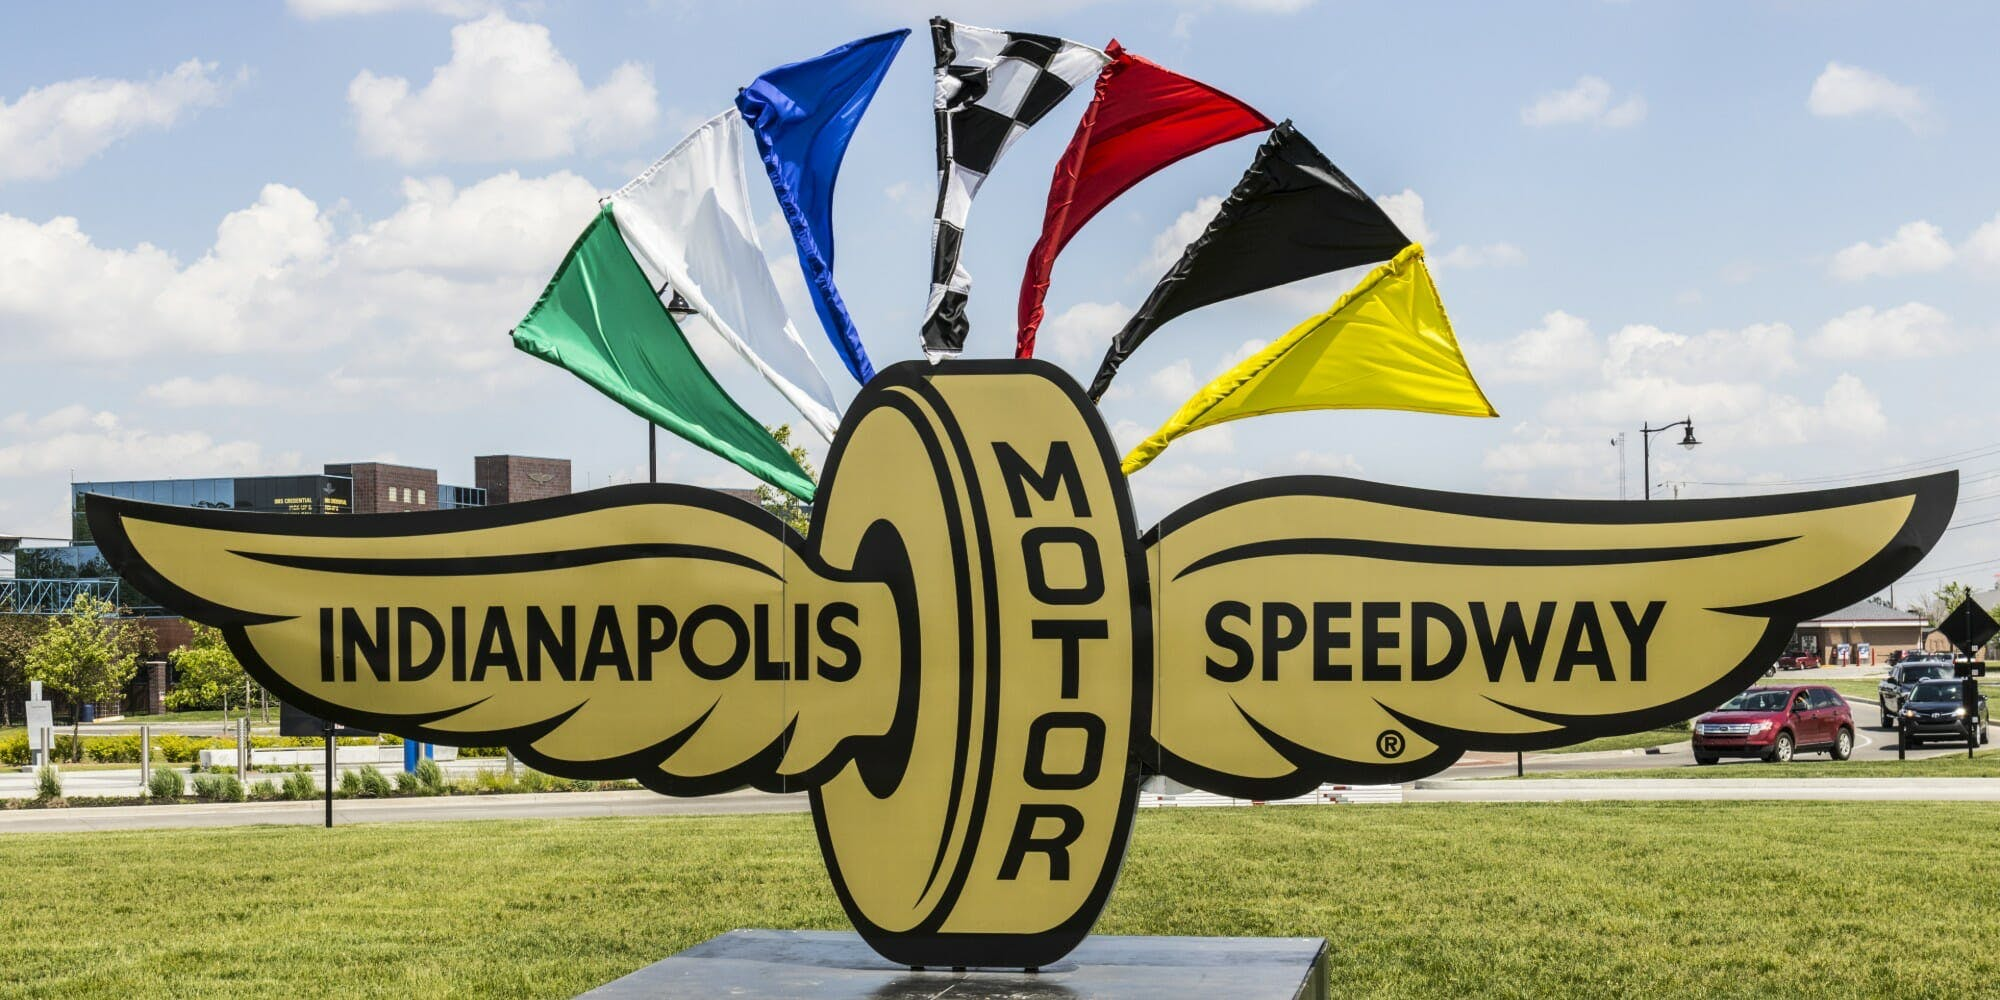 Indy 500 Live Stream: Watch the Indianapolis 500 for Free